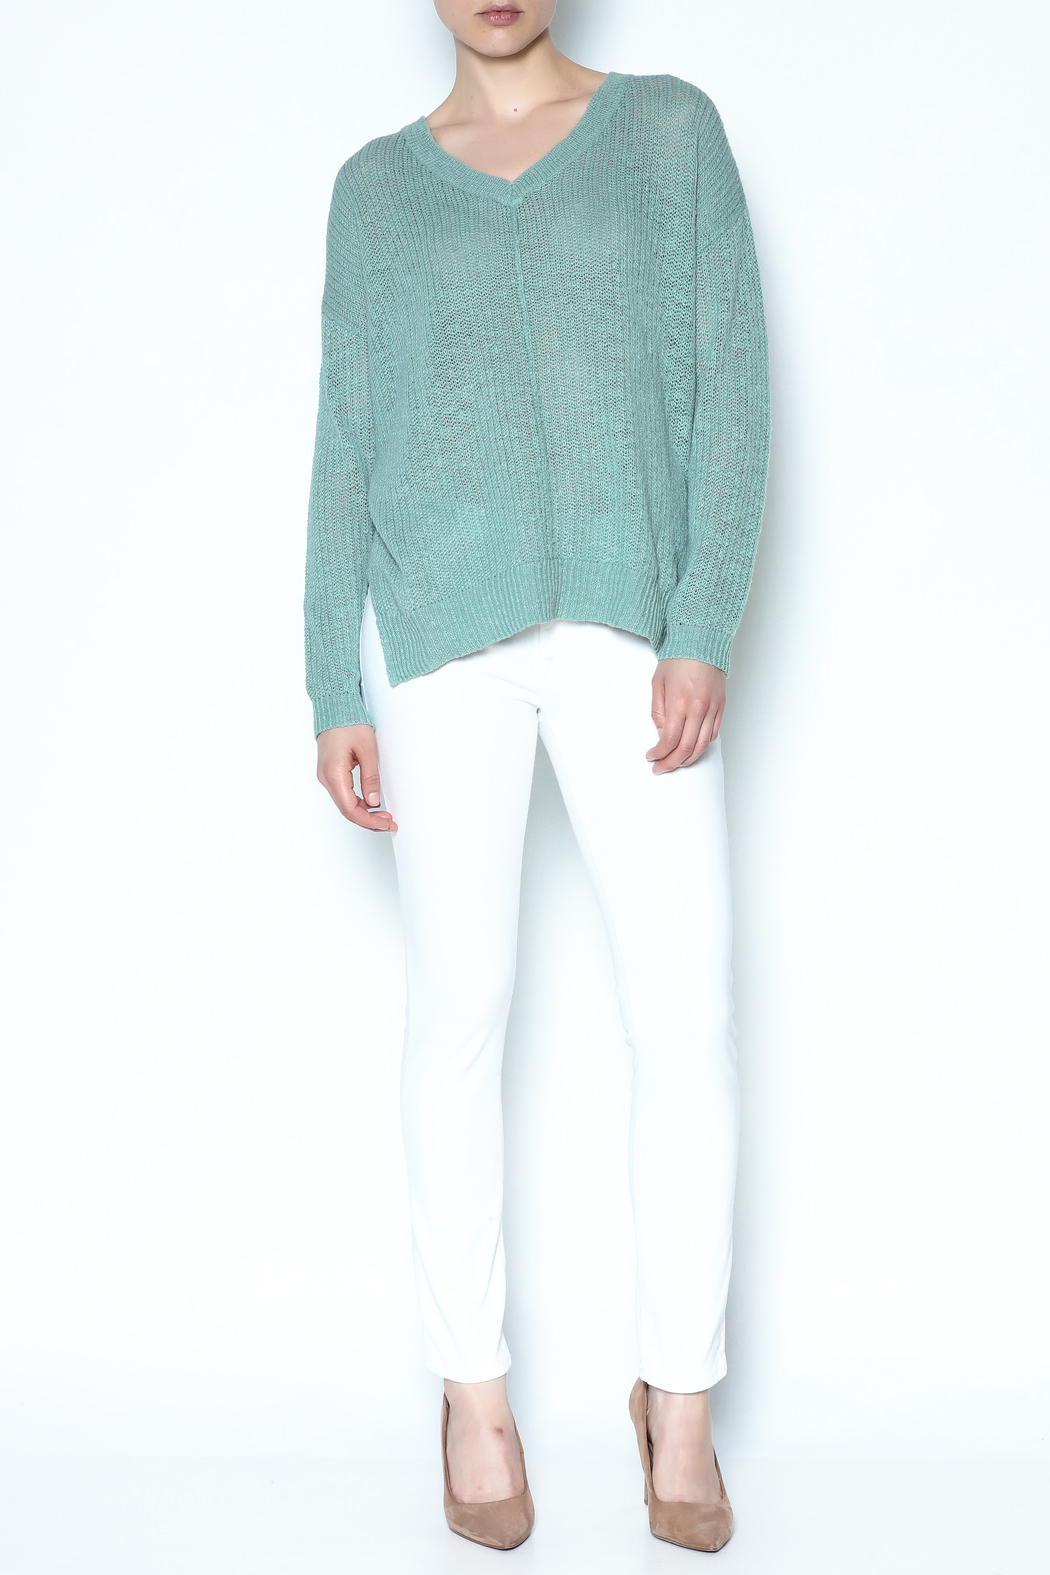 Olive & Oak Pale Cactus Sweater - Side Cropped Image